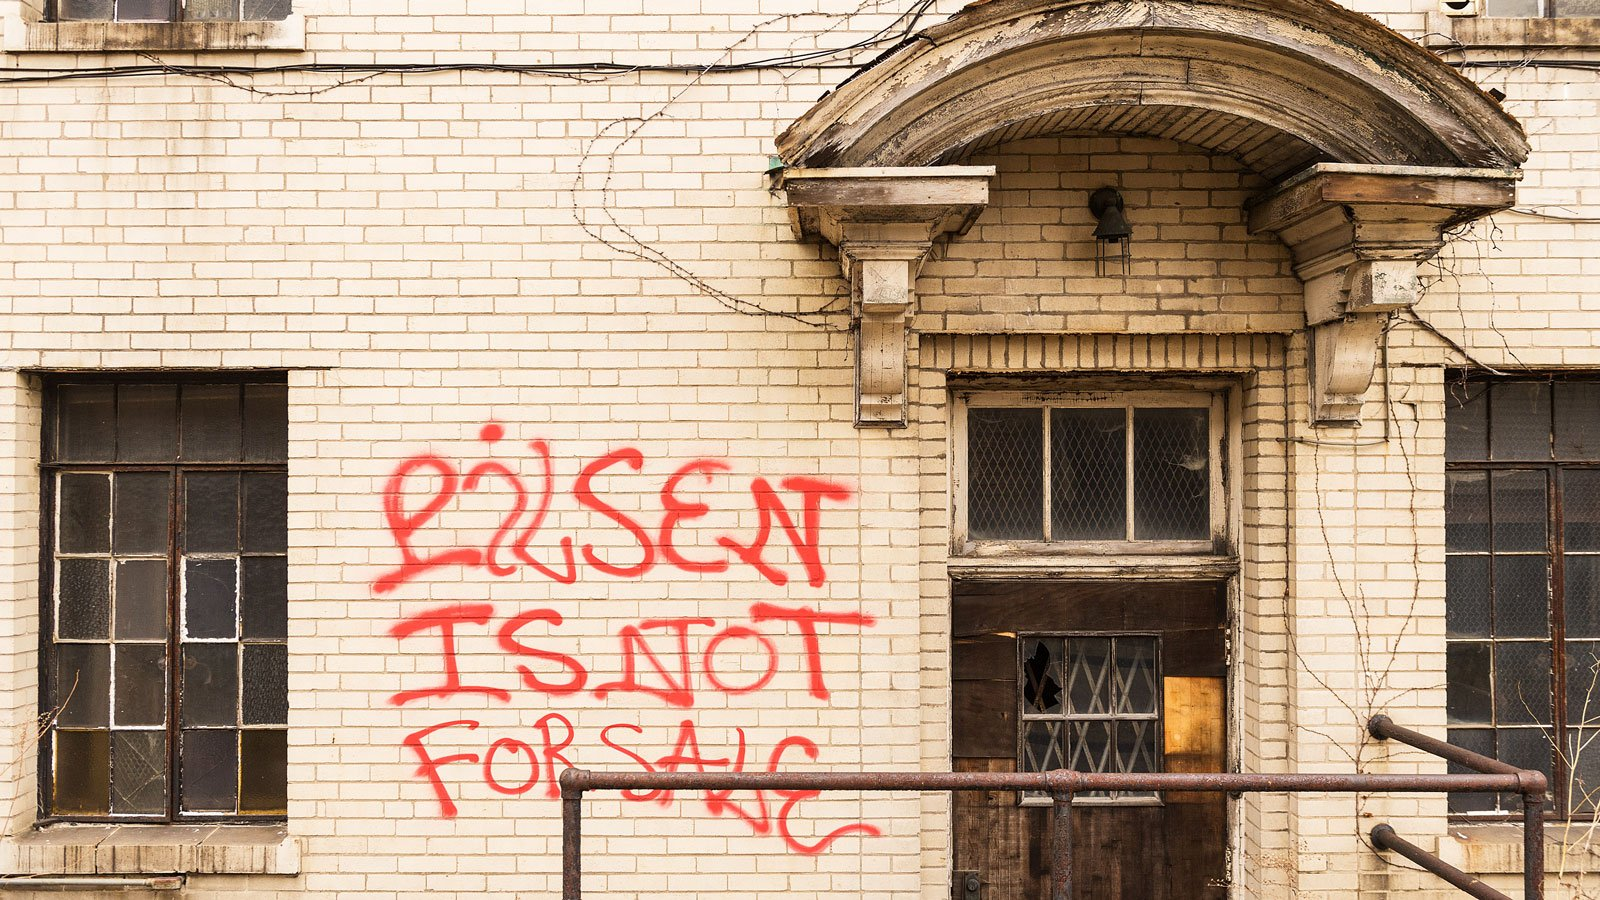 A dilapidated property is spray painted with a message, Pilsen Is Not For Sale.